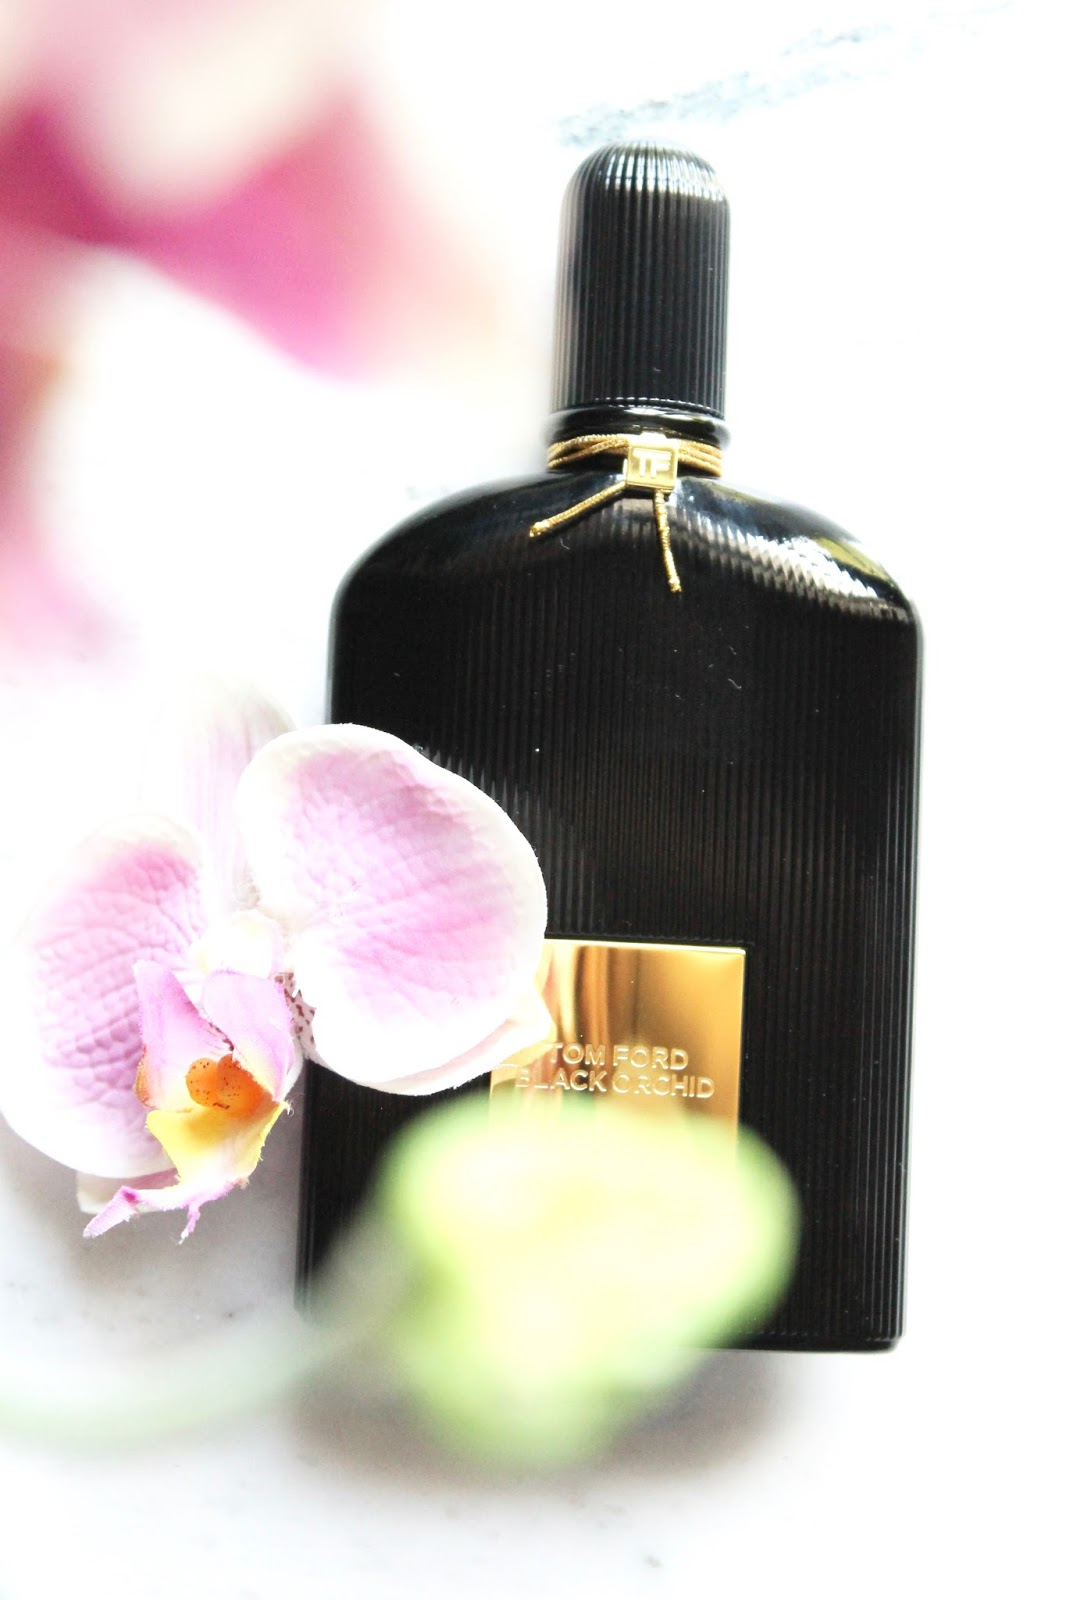 TOM FORD BLACK ORCHID & NIGHTBLOOM POWDER SNEAK PEEK